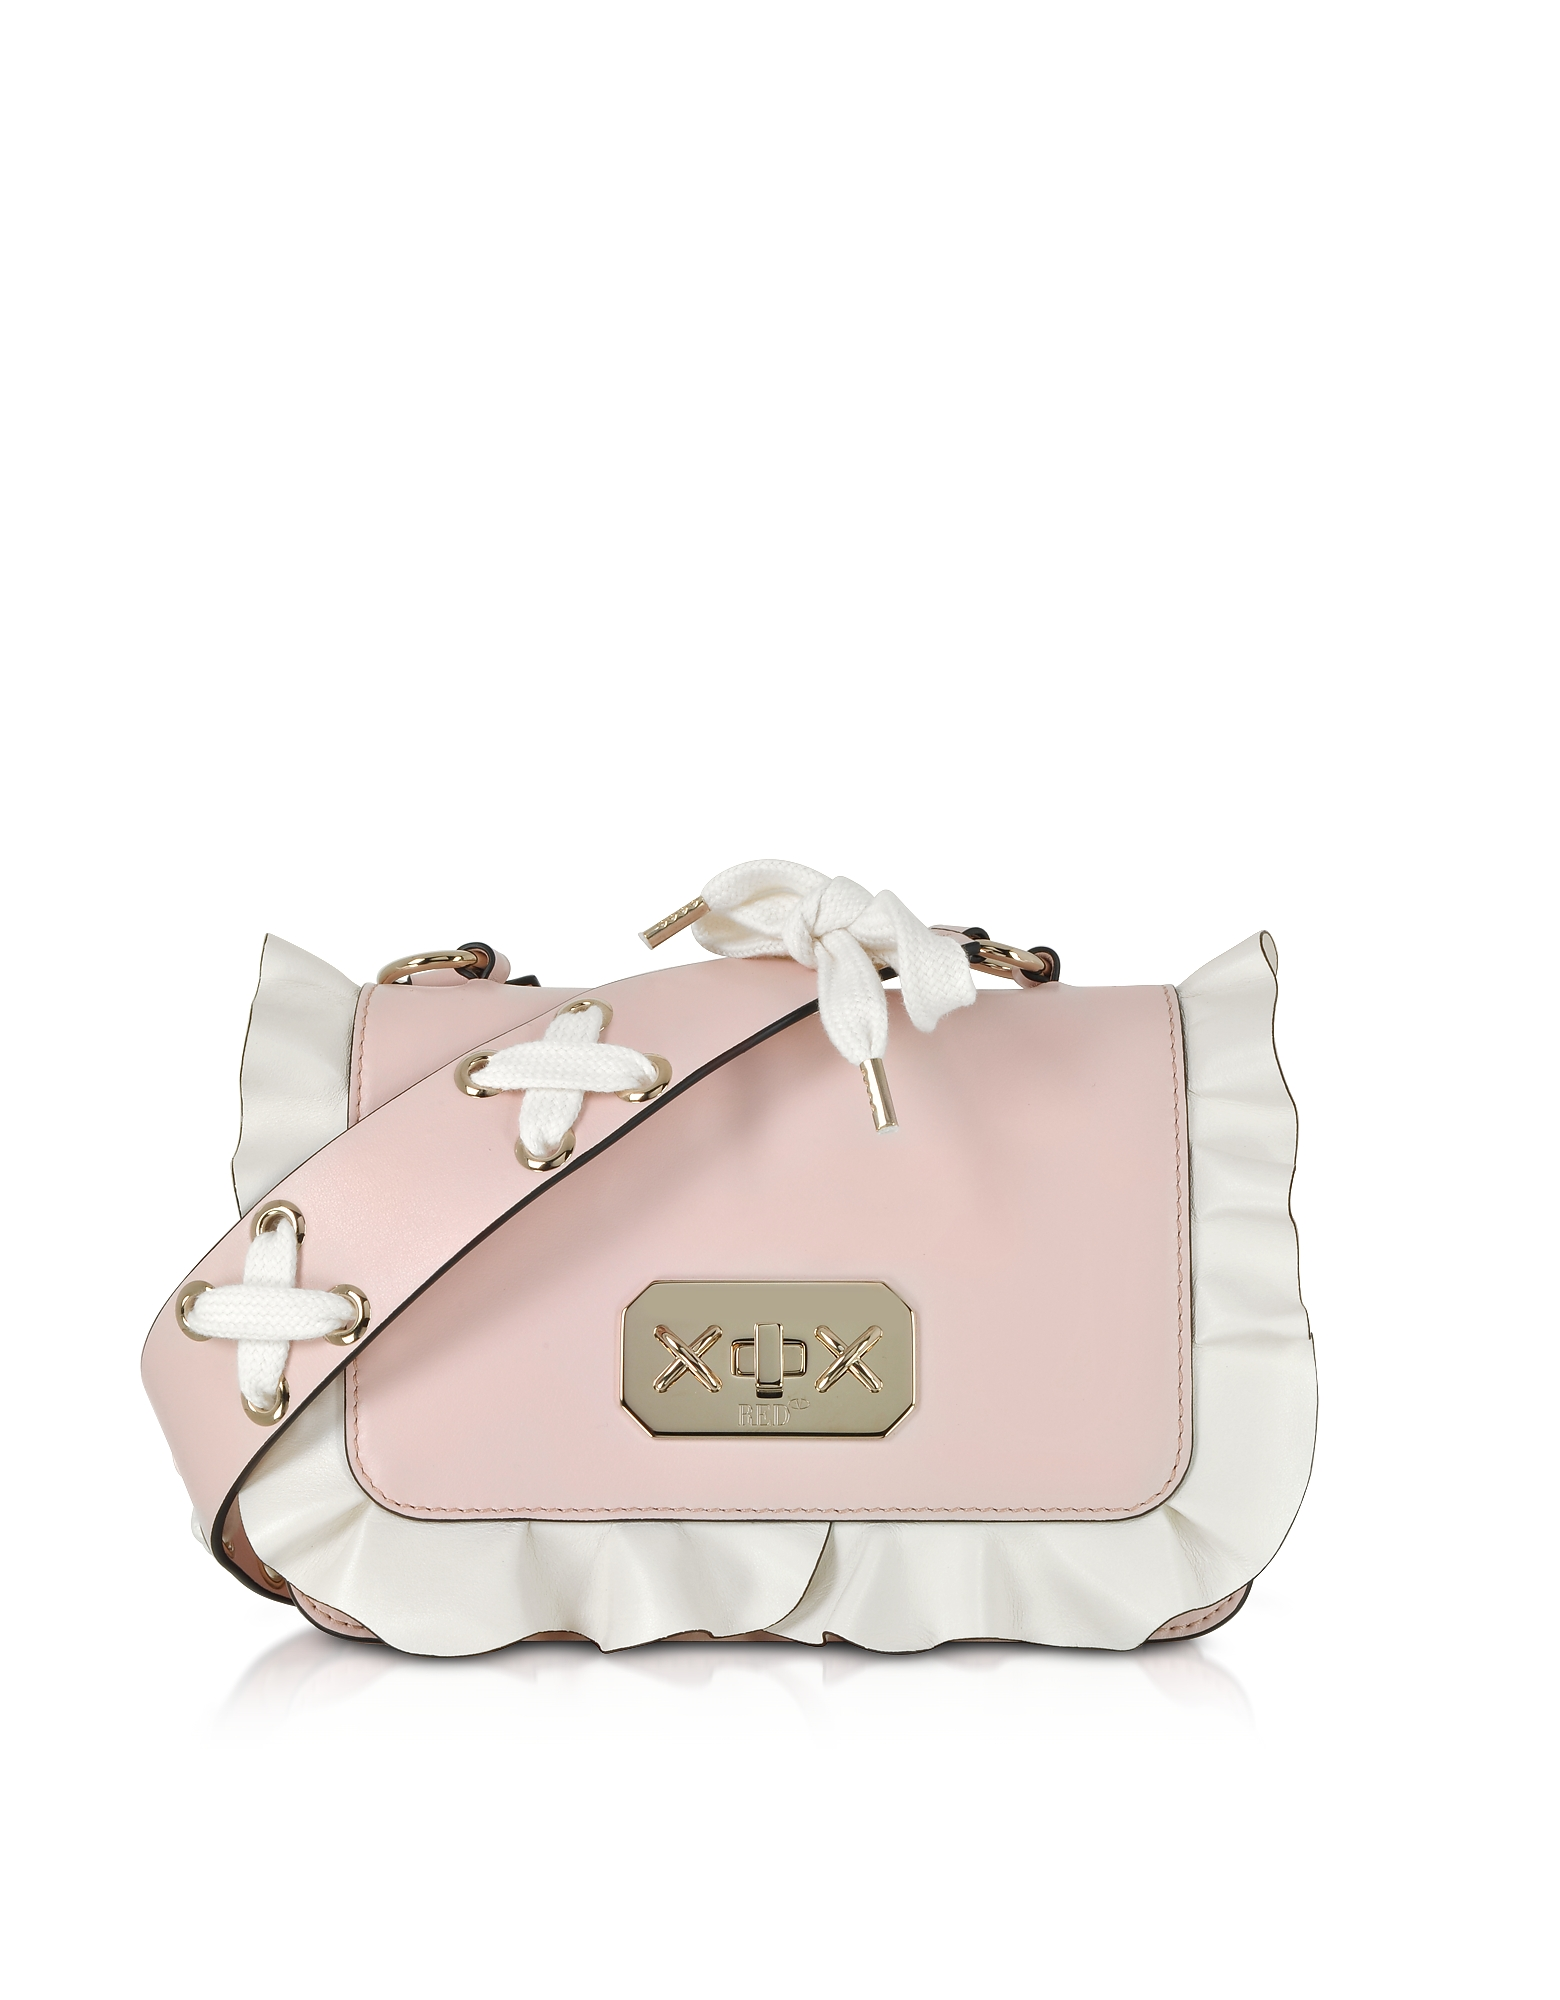 Two Tone Leather Small Ruffle Shoulder Bag